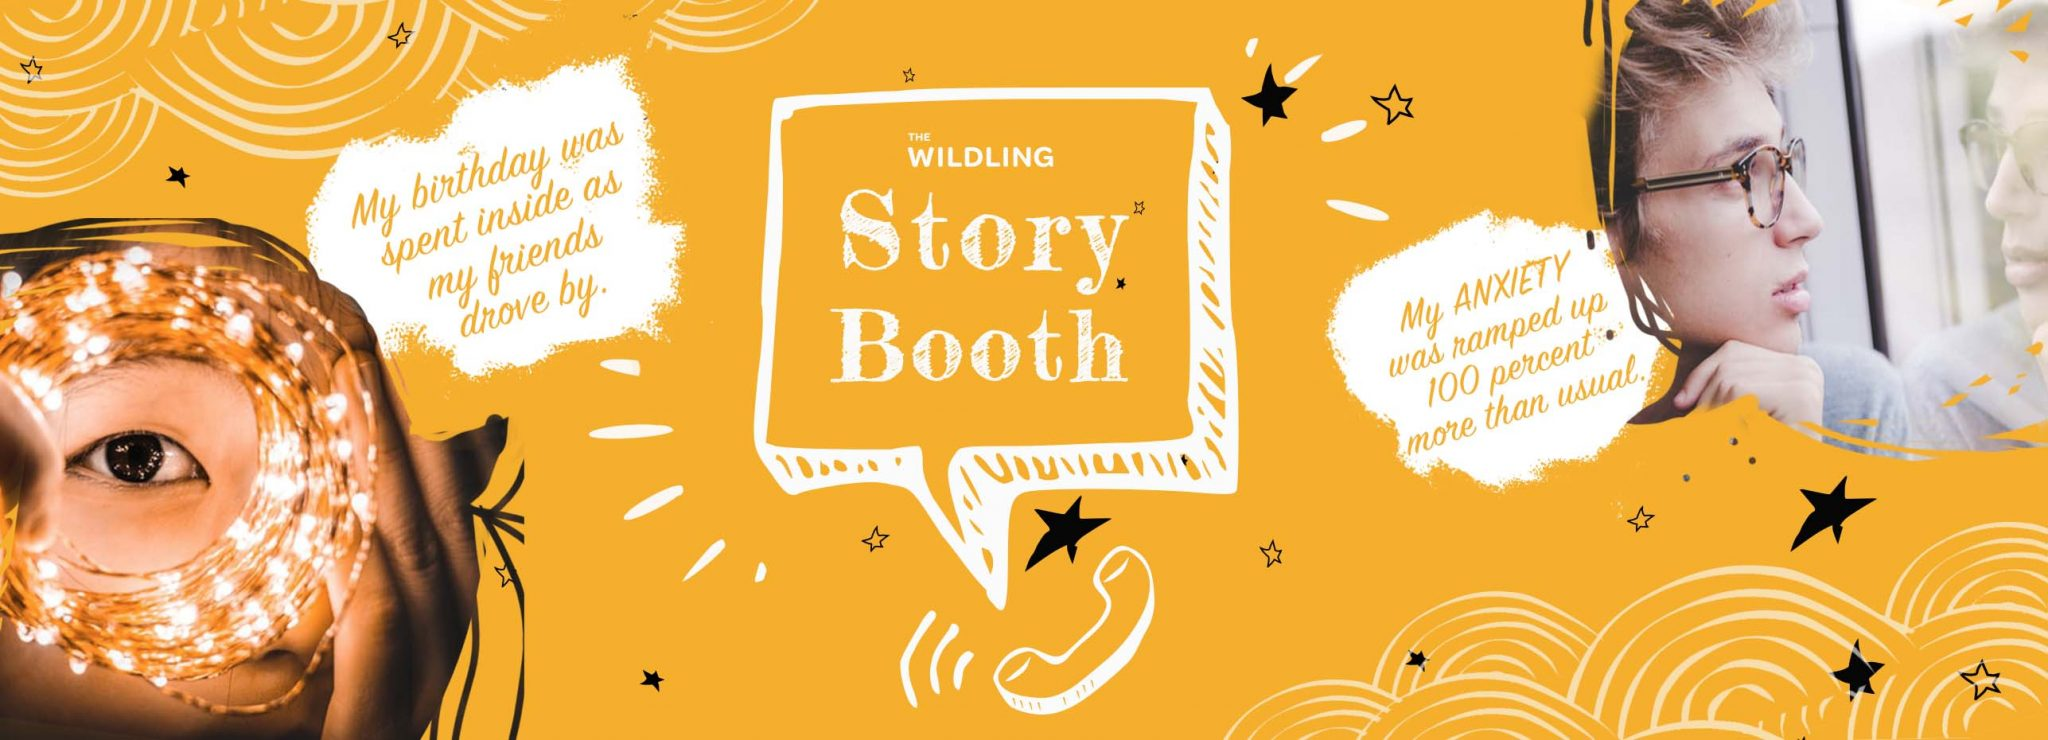 Storybooth2